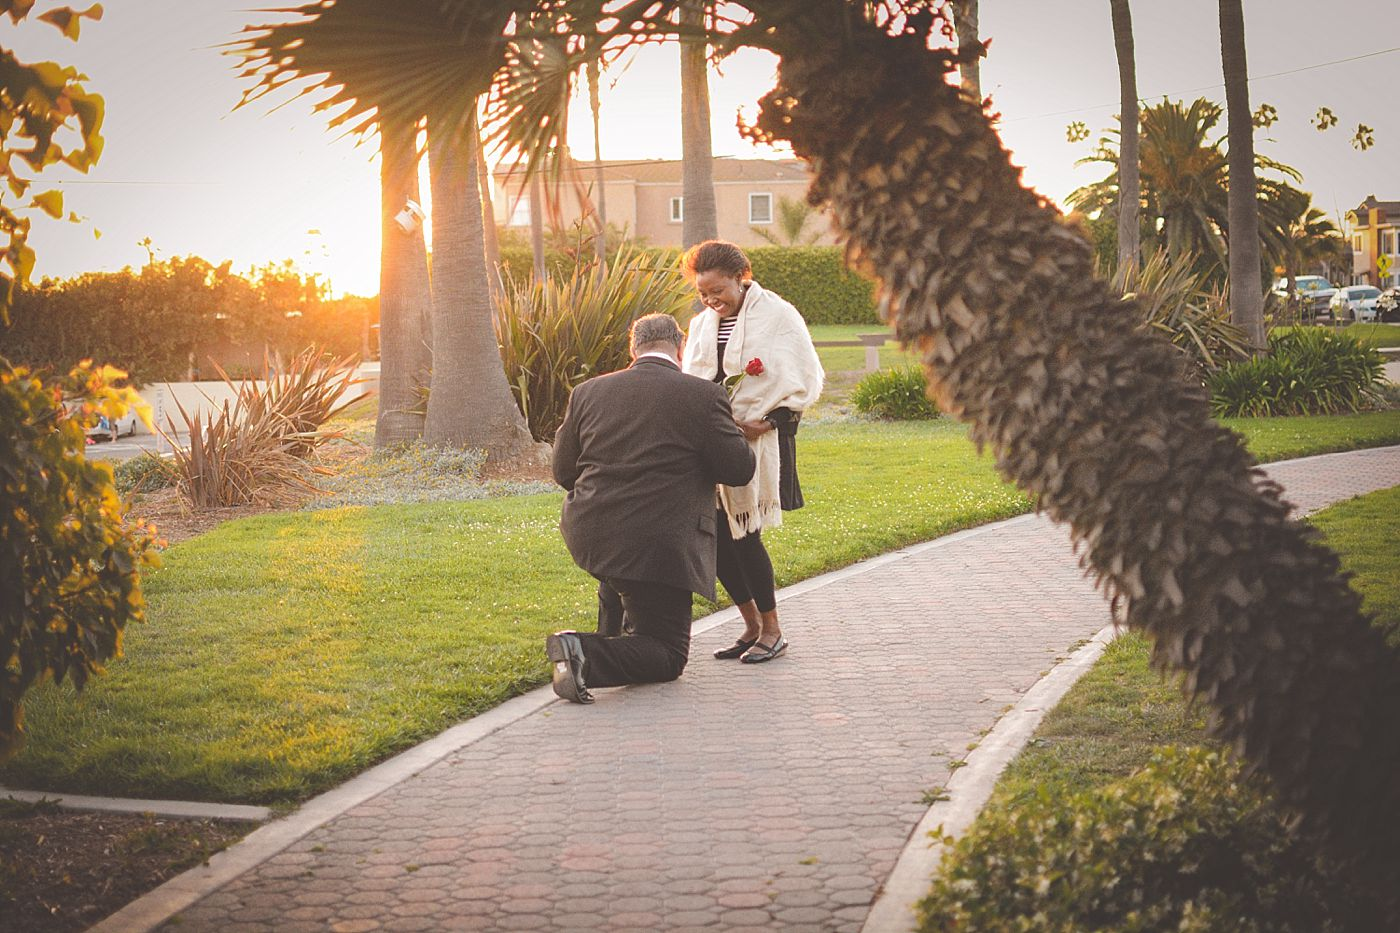 woman holding rose smiling as man proposes, seal beach, sunset, captured grace by erin